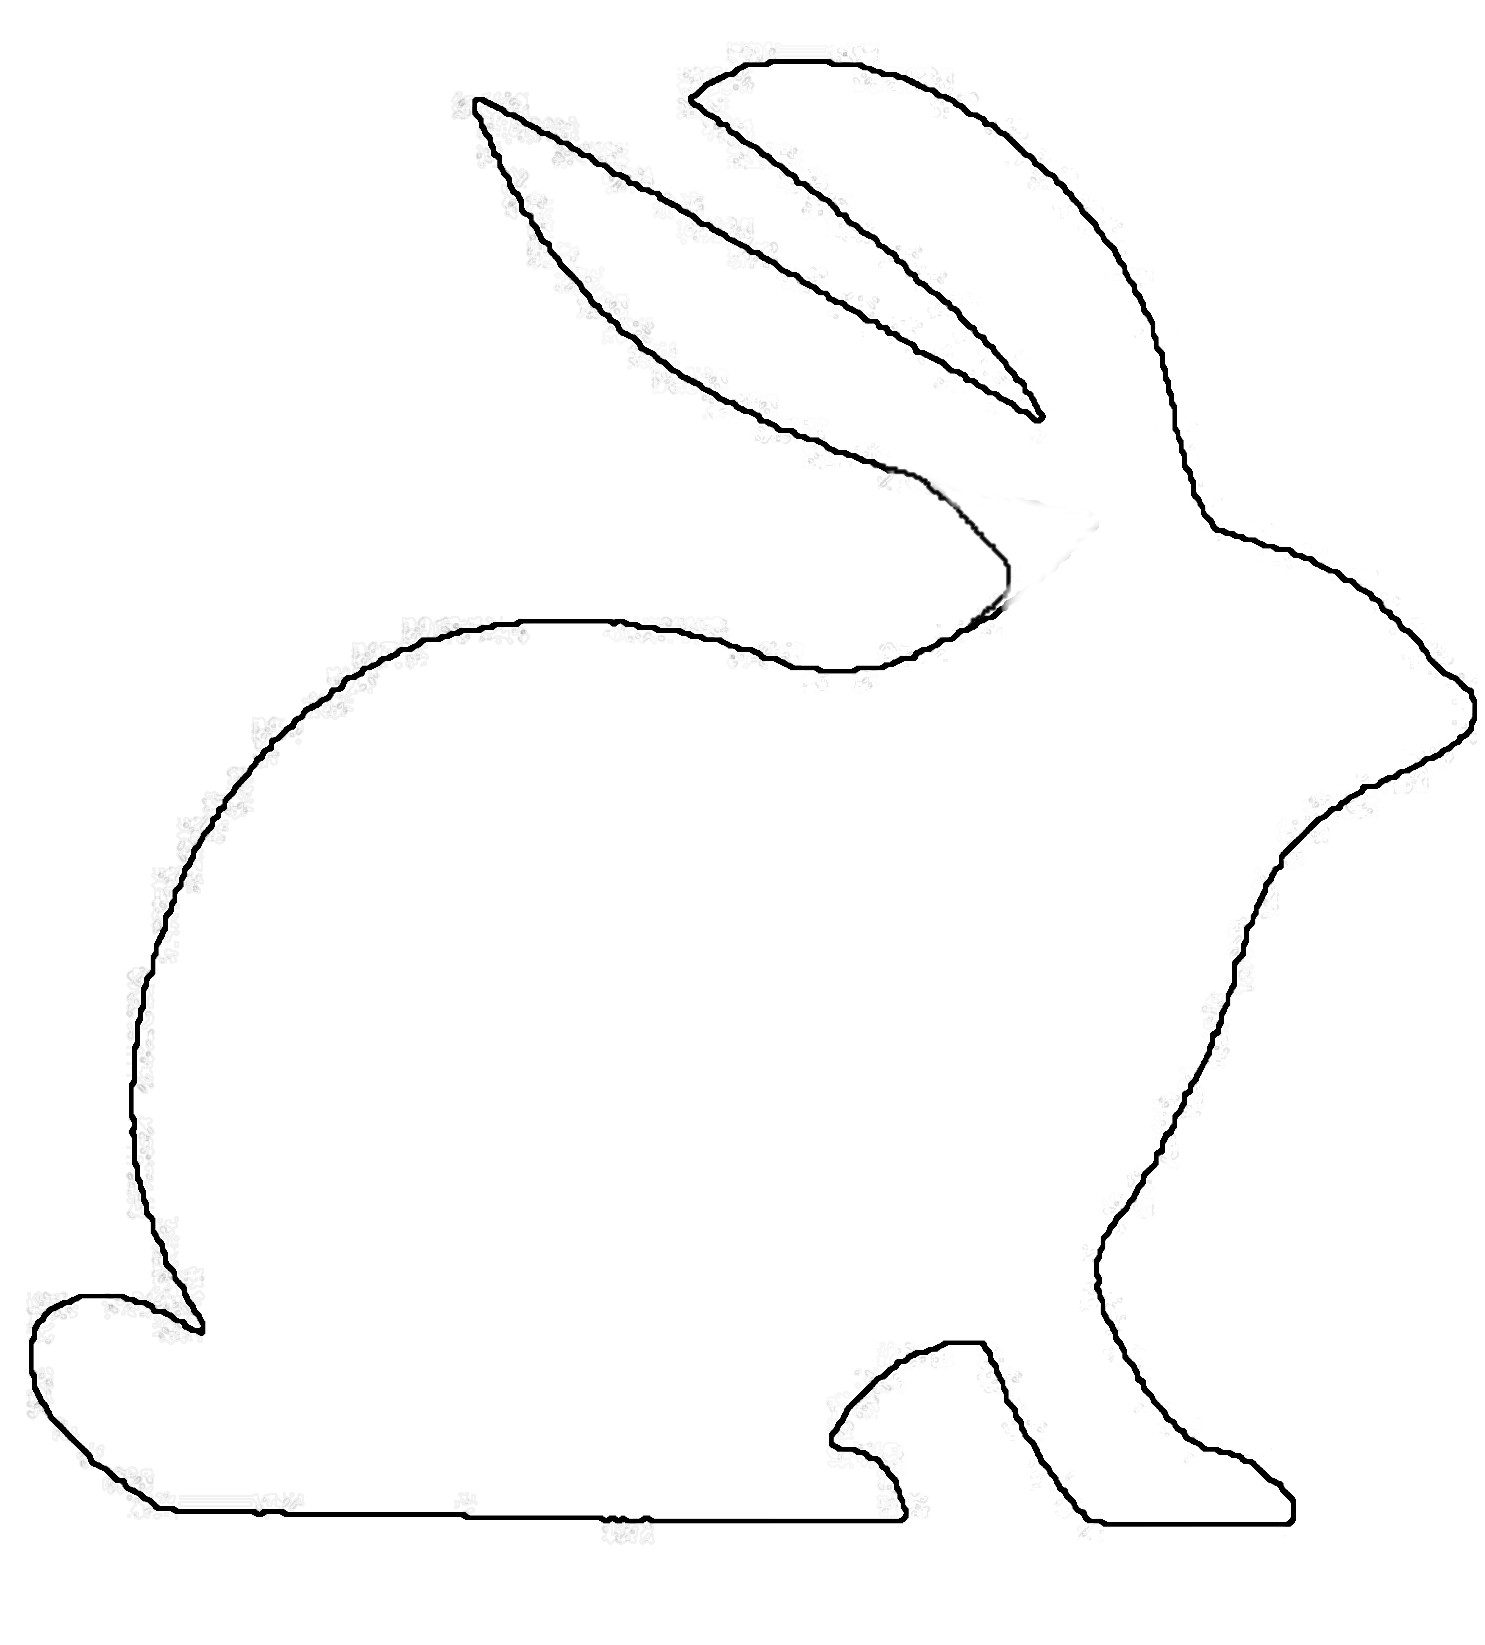 Line Drawing Easter Bunny : Outline drawing of rabbits clipart best